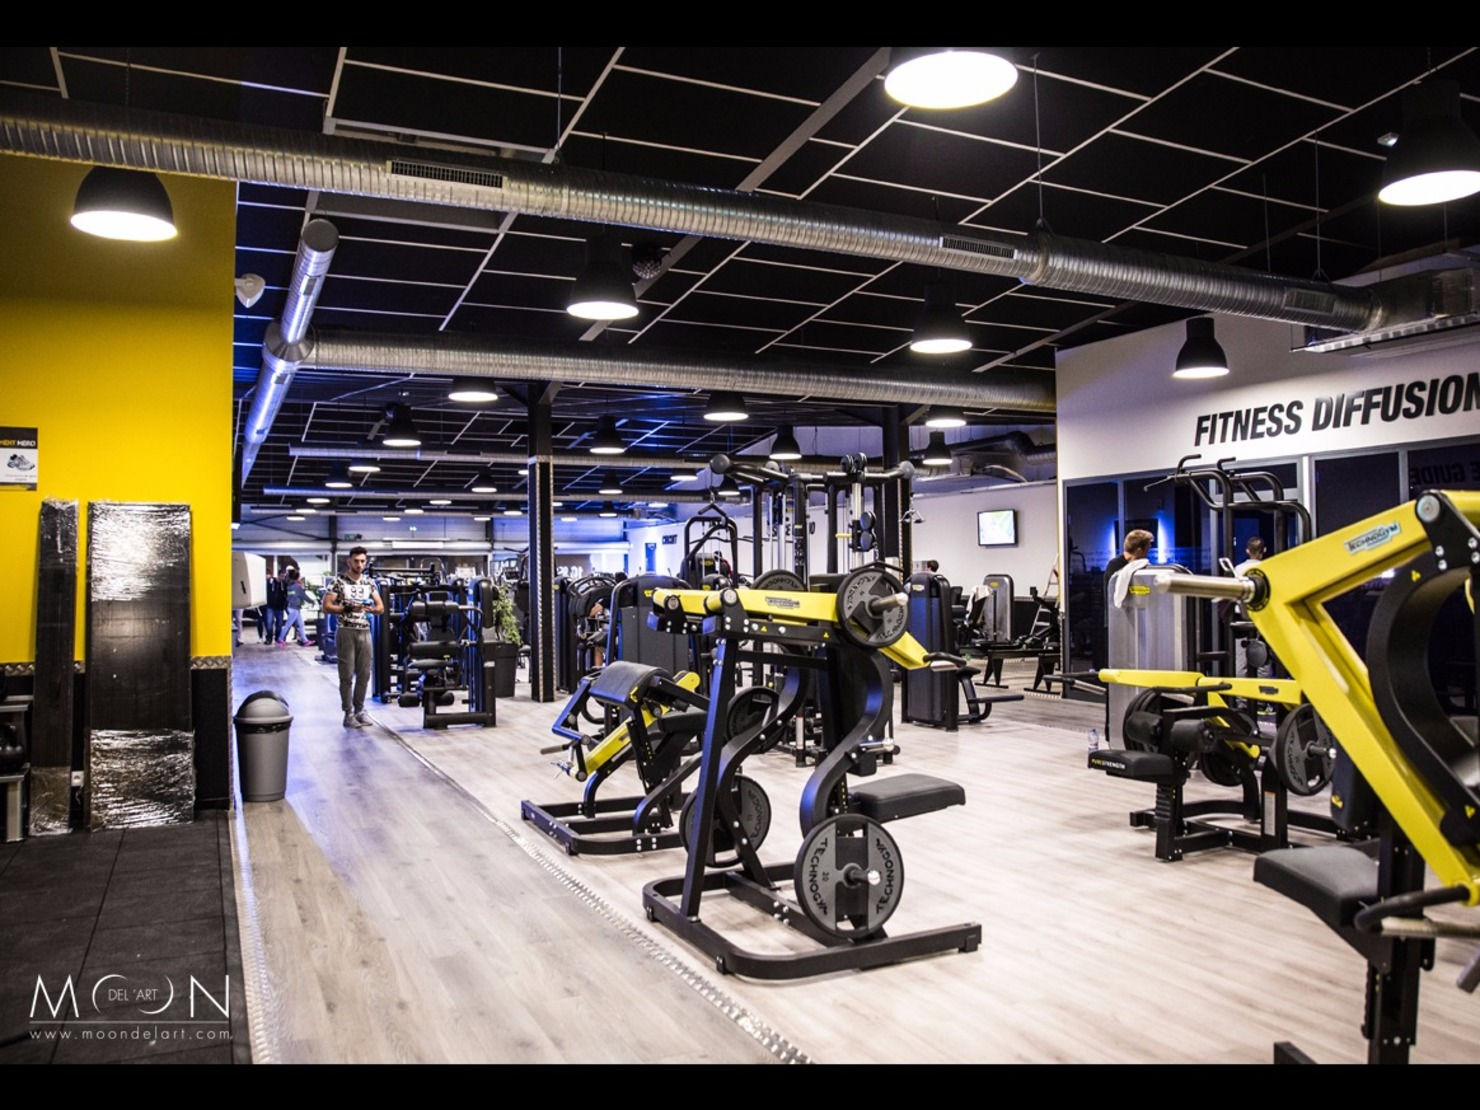 fitness park nevers tarifs avis horaires essai gratuit. Black Bedroom Furniture Sets. Home Design Ideas